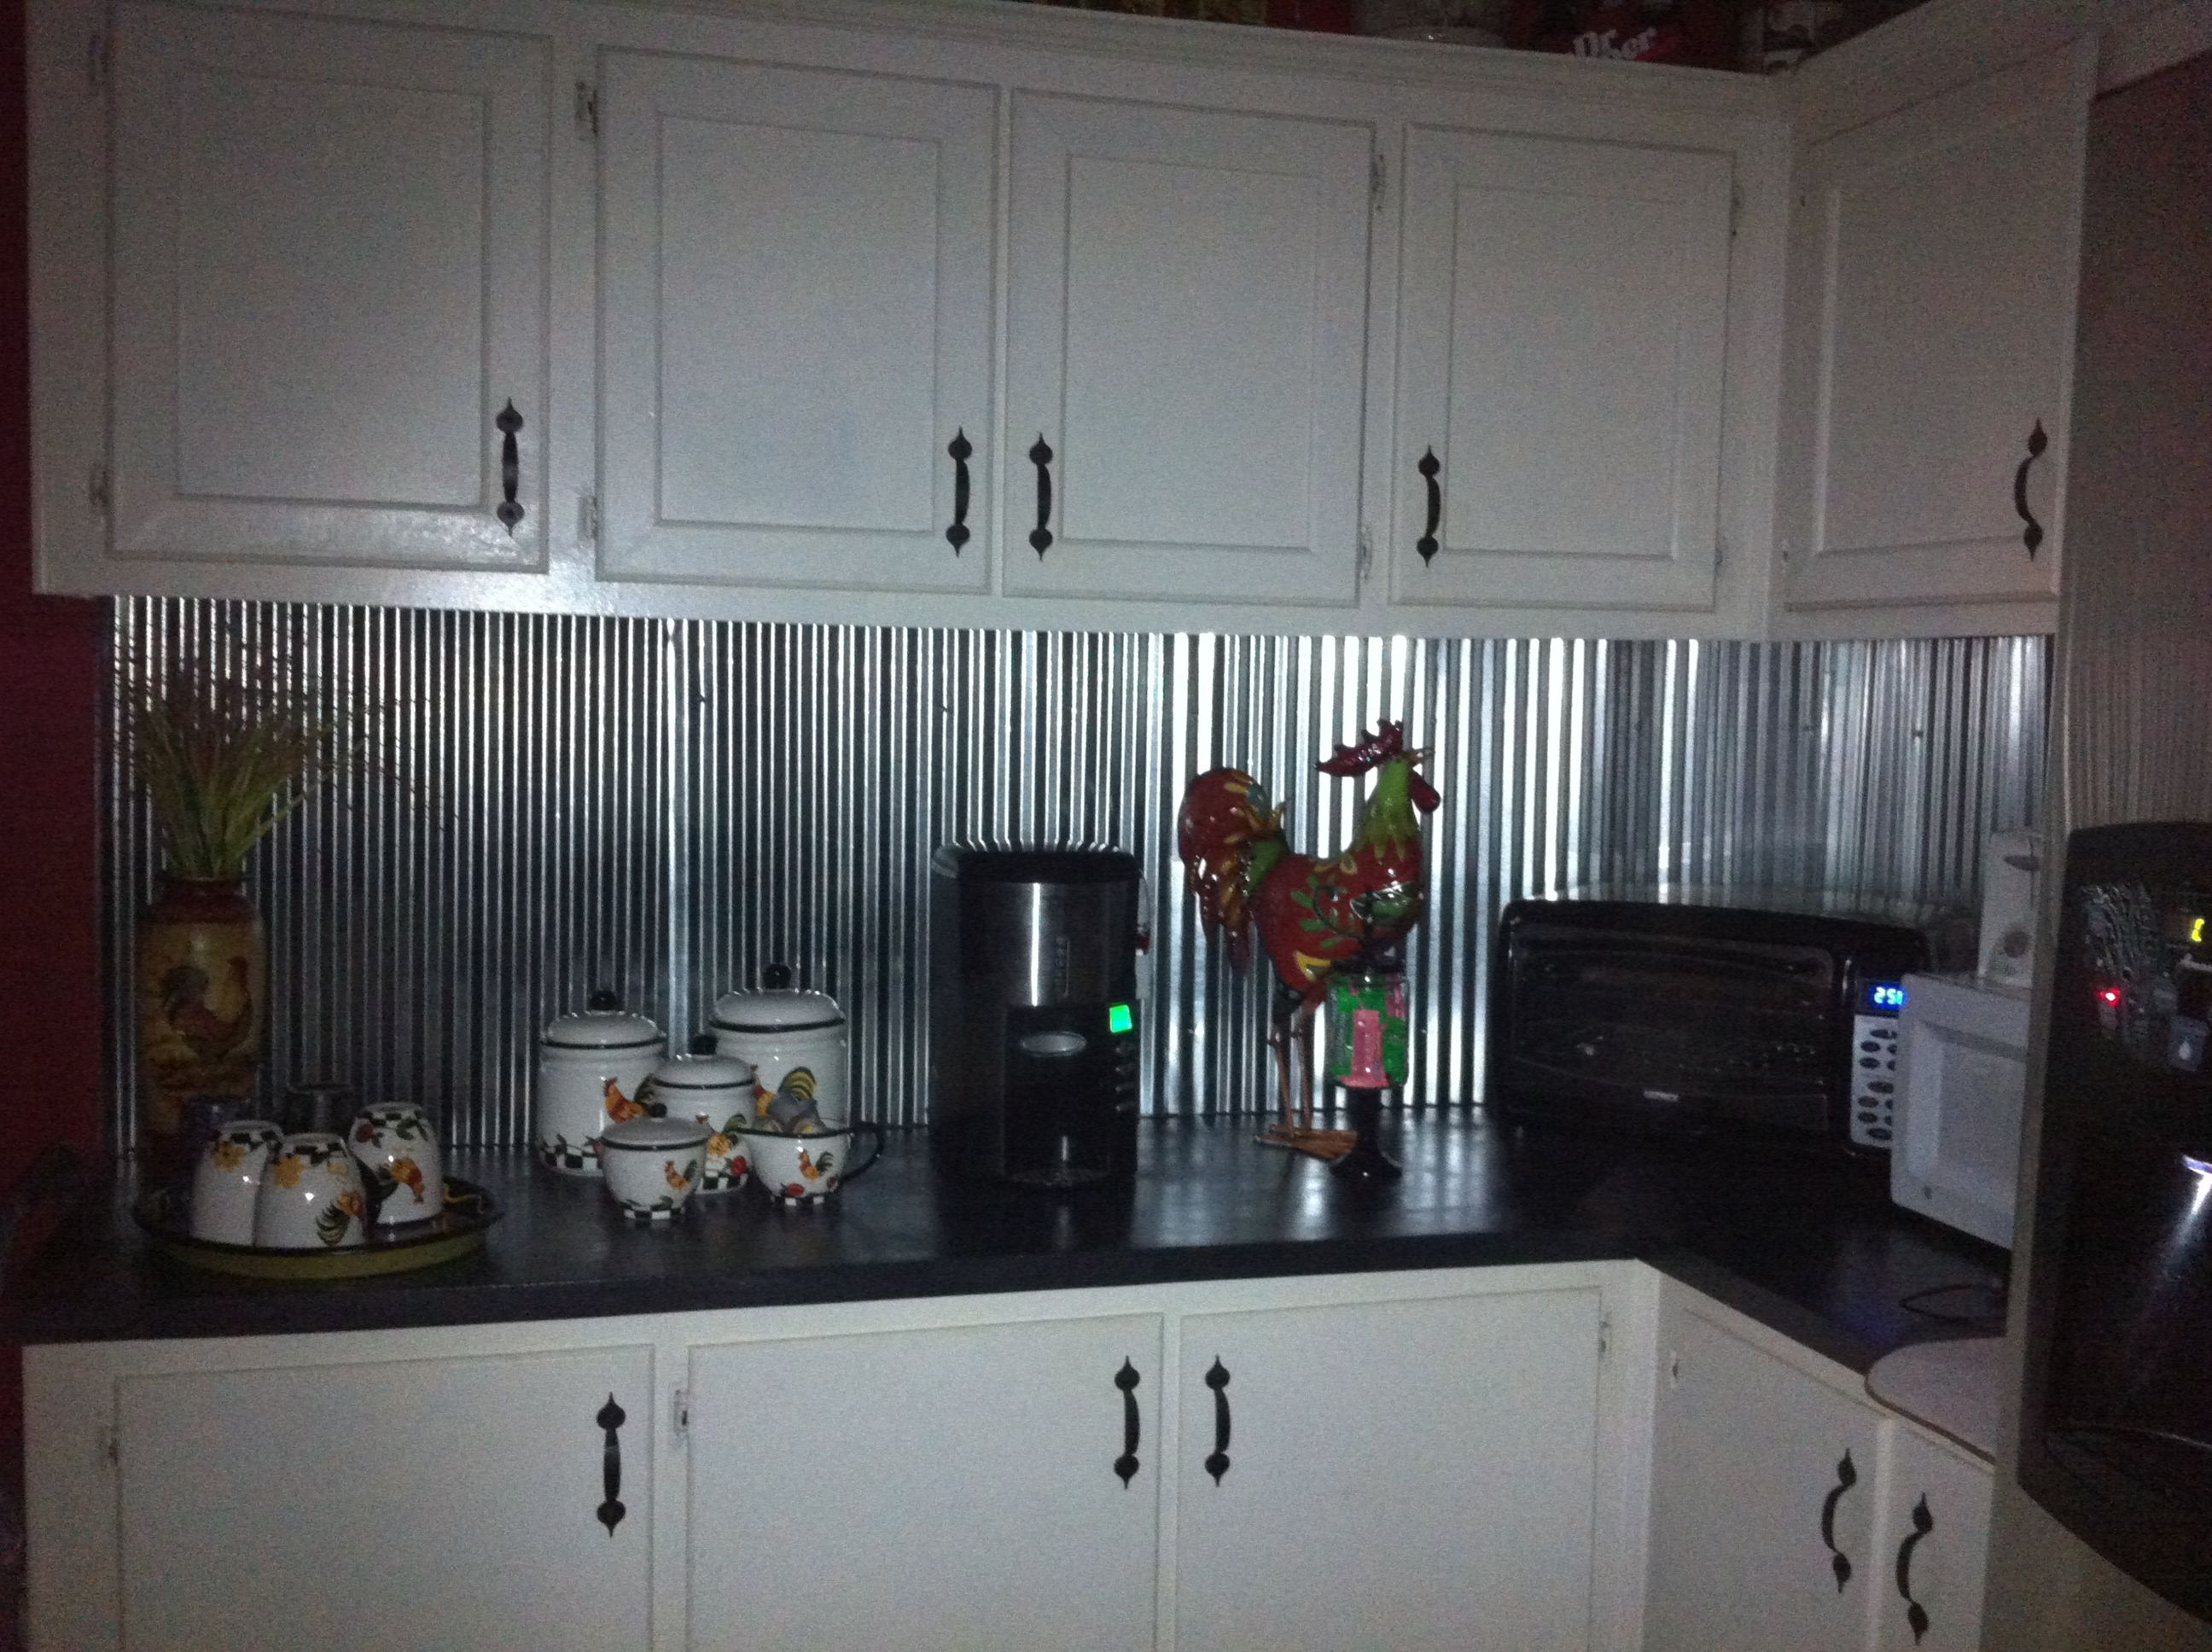 metal kitchen backsplash Corrugated metal for backsplash i want to do this looking for good ideas